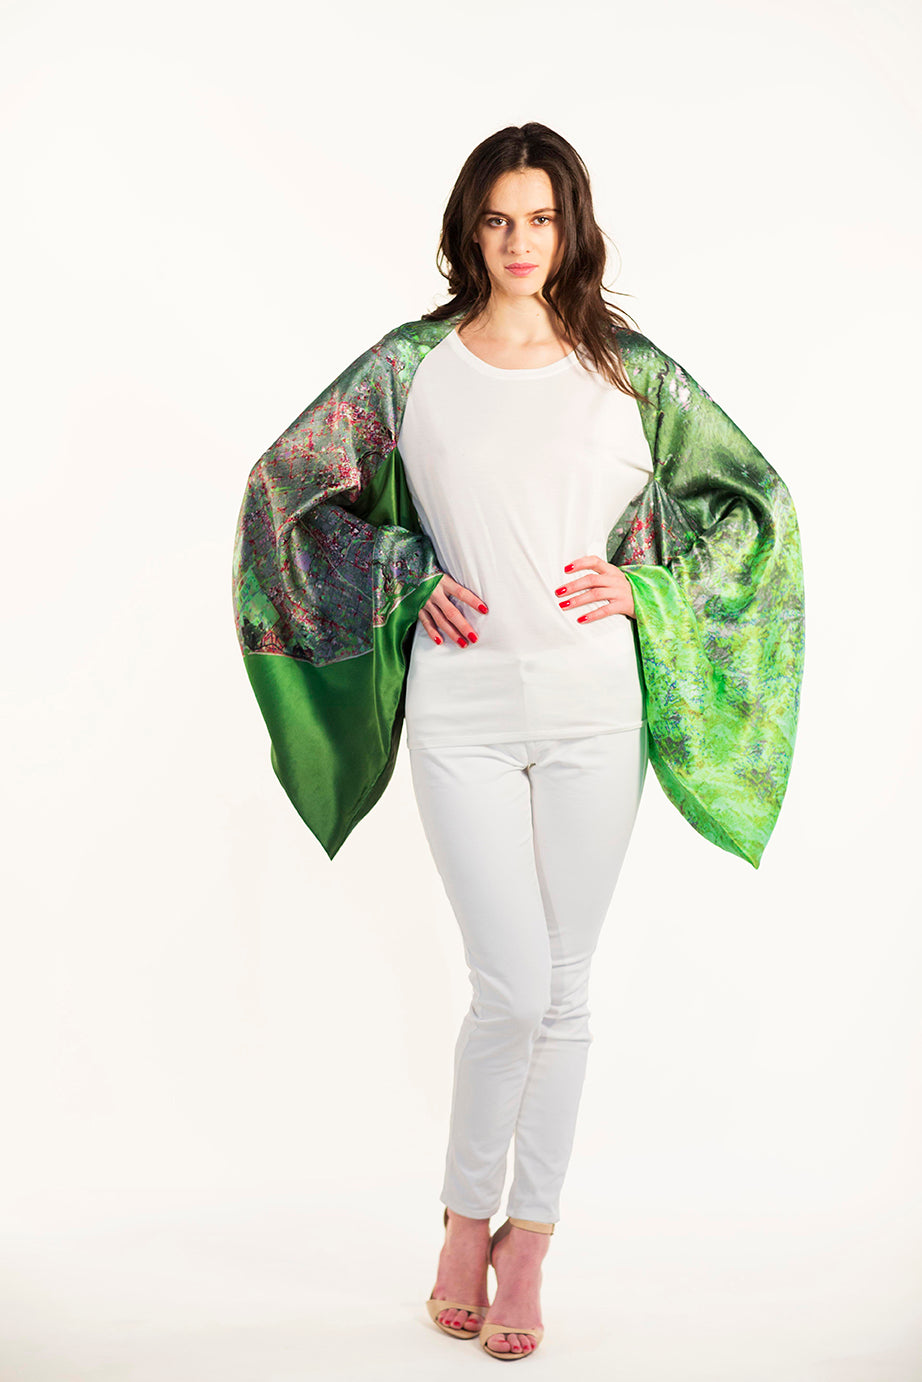 Los Angeles Green Sleeve Scarf/Shawl/Top